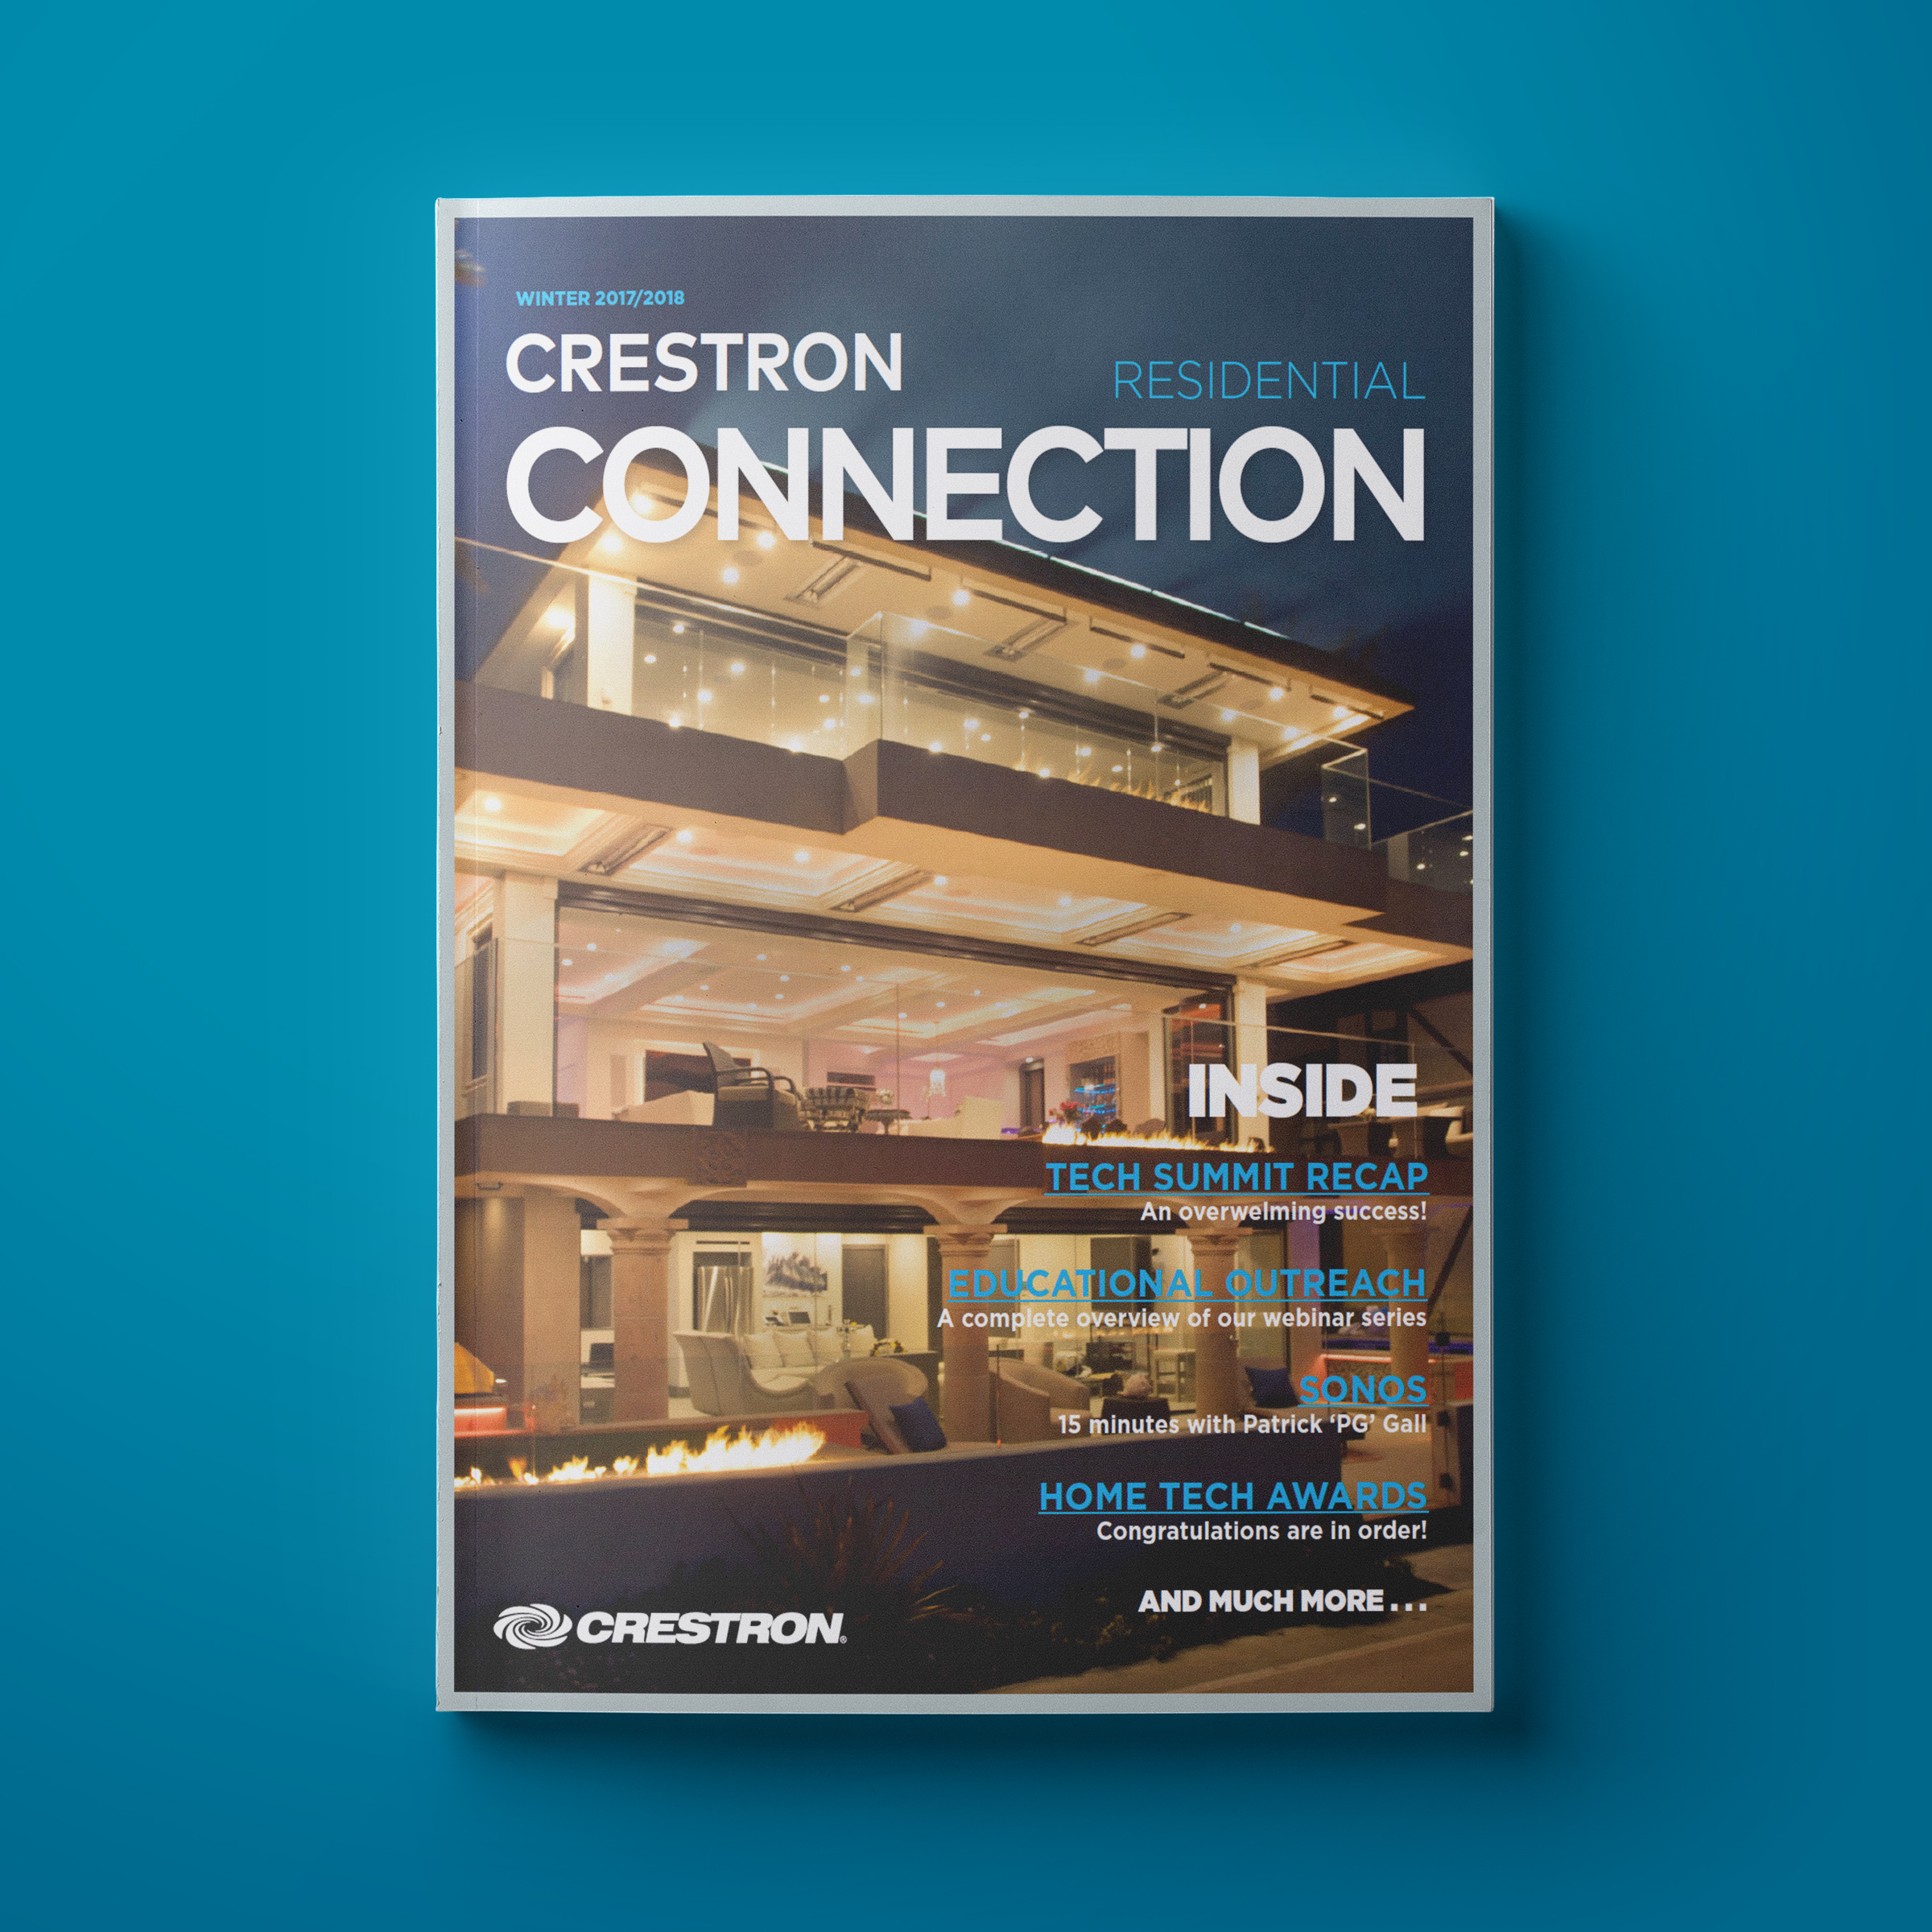 Crestron Launches New Magazine for Residential Technology Professionals